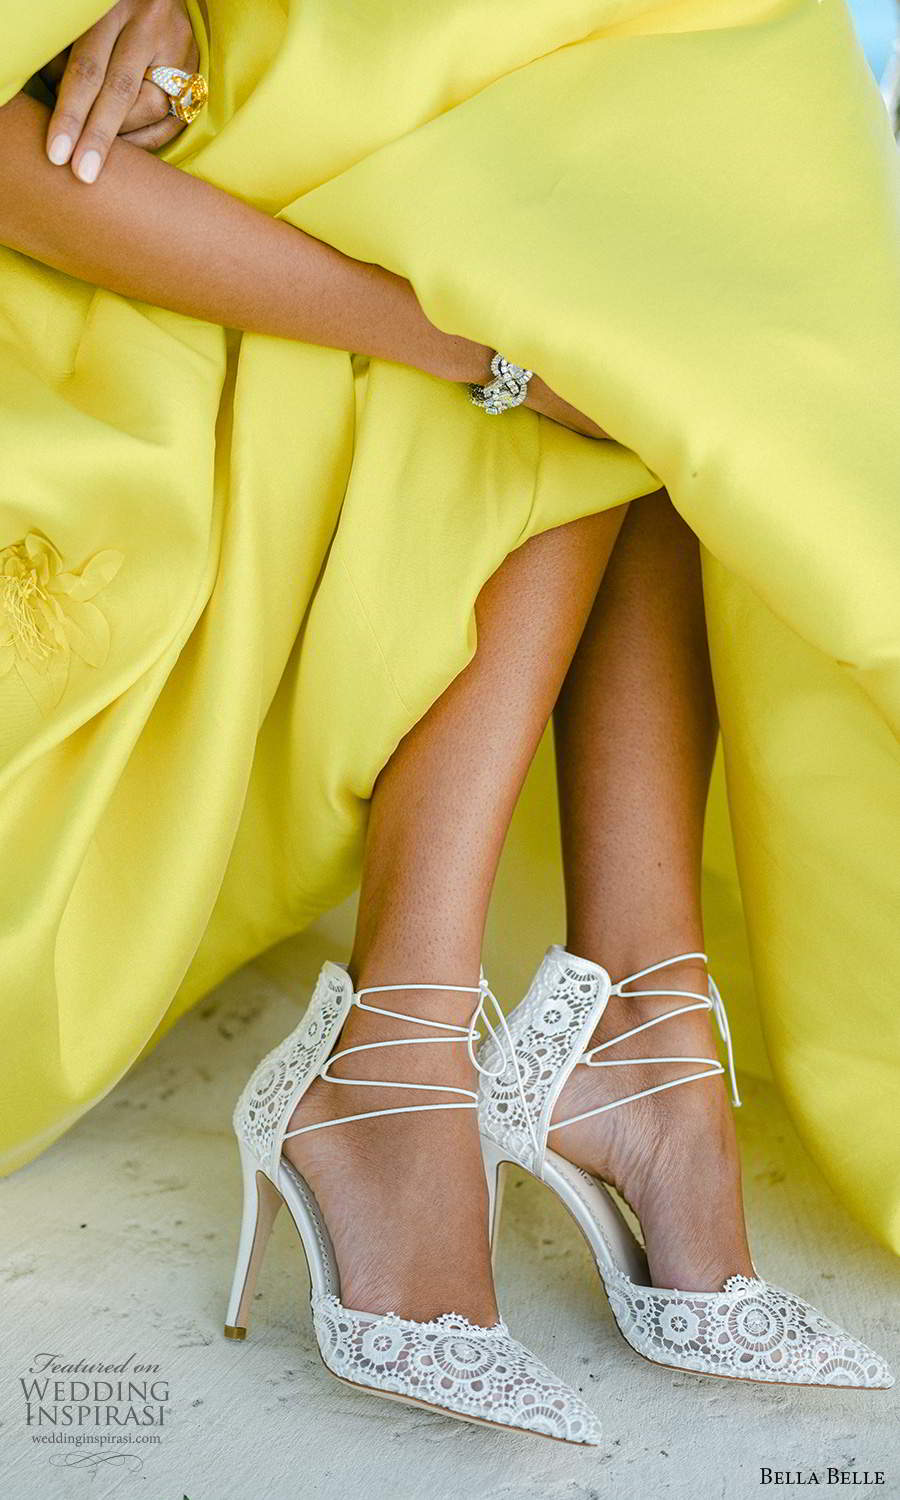 bella belle spring 2021 bridal shoes lime yellow gown ankle straps pointy toe high heel shoes (6) zv